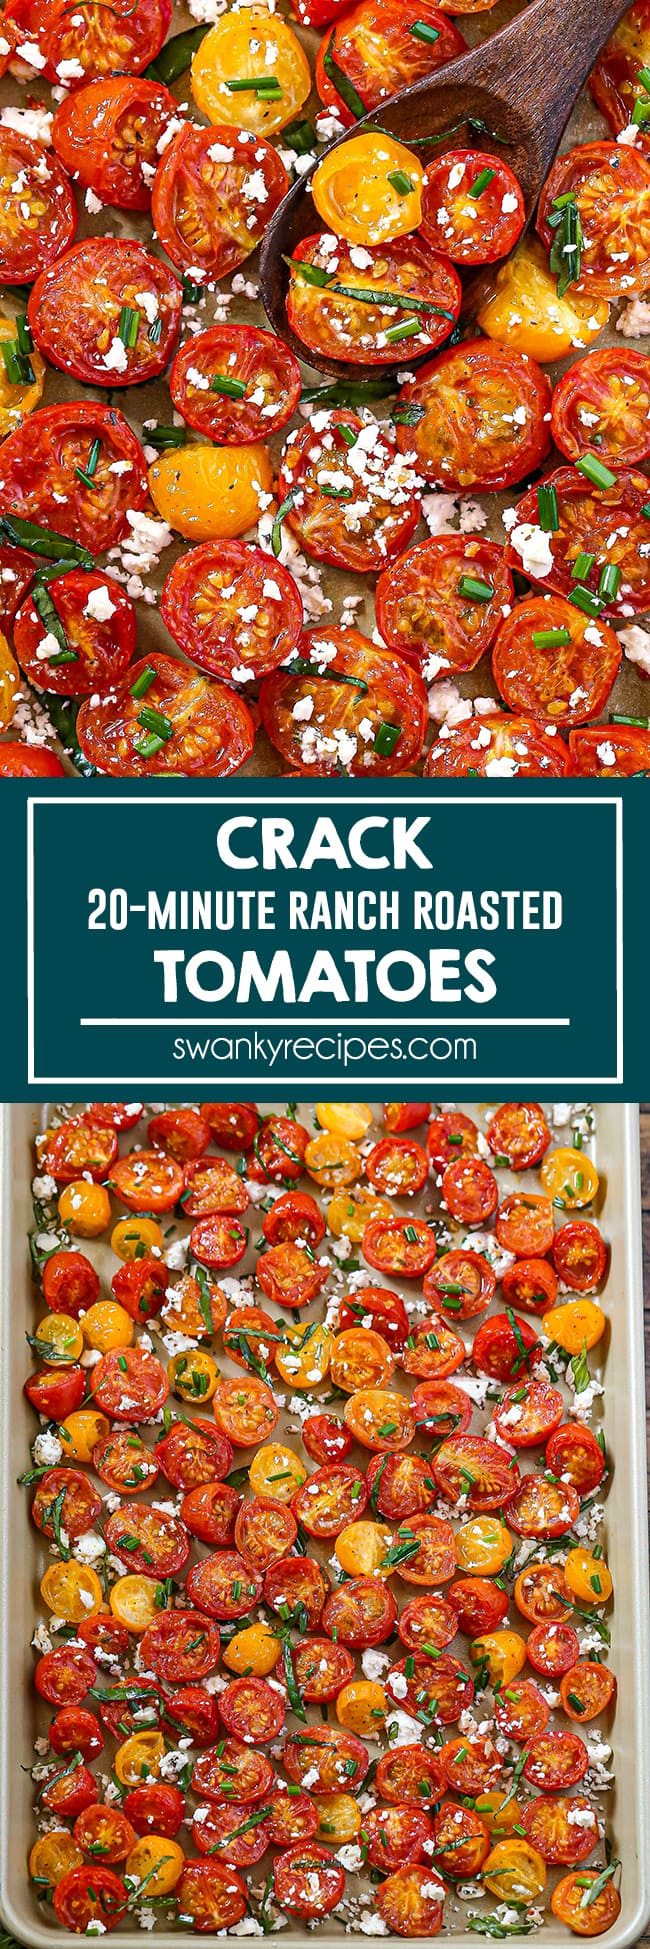 Crack Tomatoes {The Best Oven Roasted Tomatoes} - An overhead view of red cherry and yellow currant tomato halves on a gold roasted sheet pan. Garnished with feta cheese, basil, and chives. Text in center reads Crack Tomatoes, 20 minute ranch roasted. Second image is a far view of the tomatoes on a roasted pan.